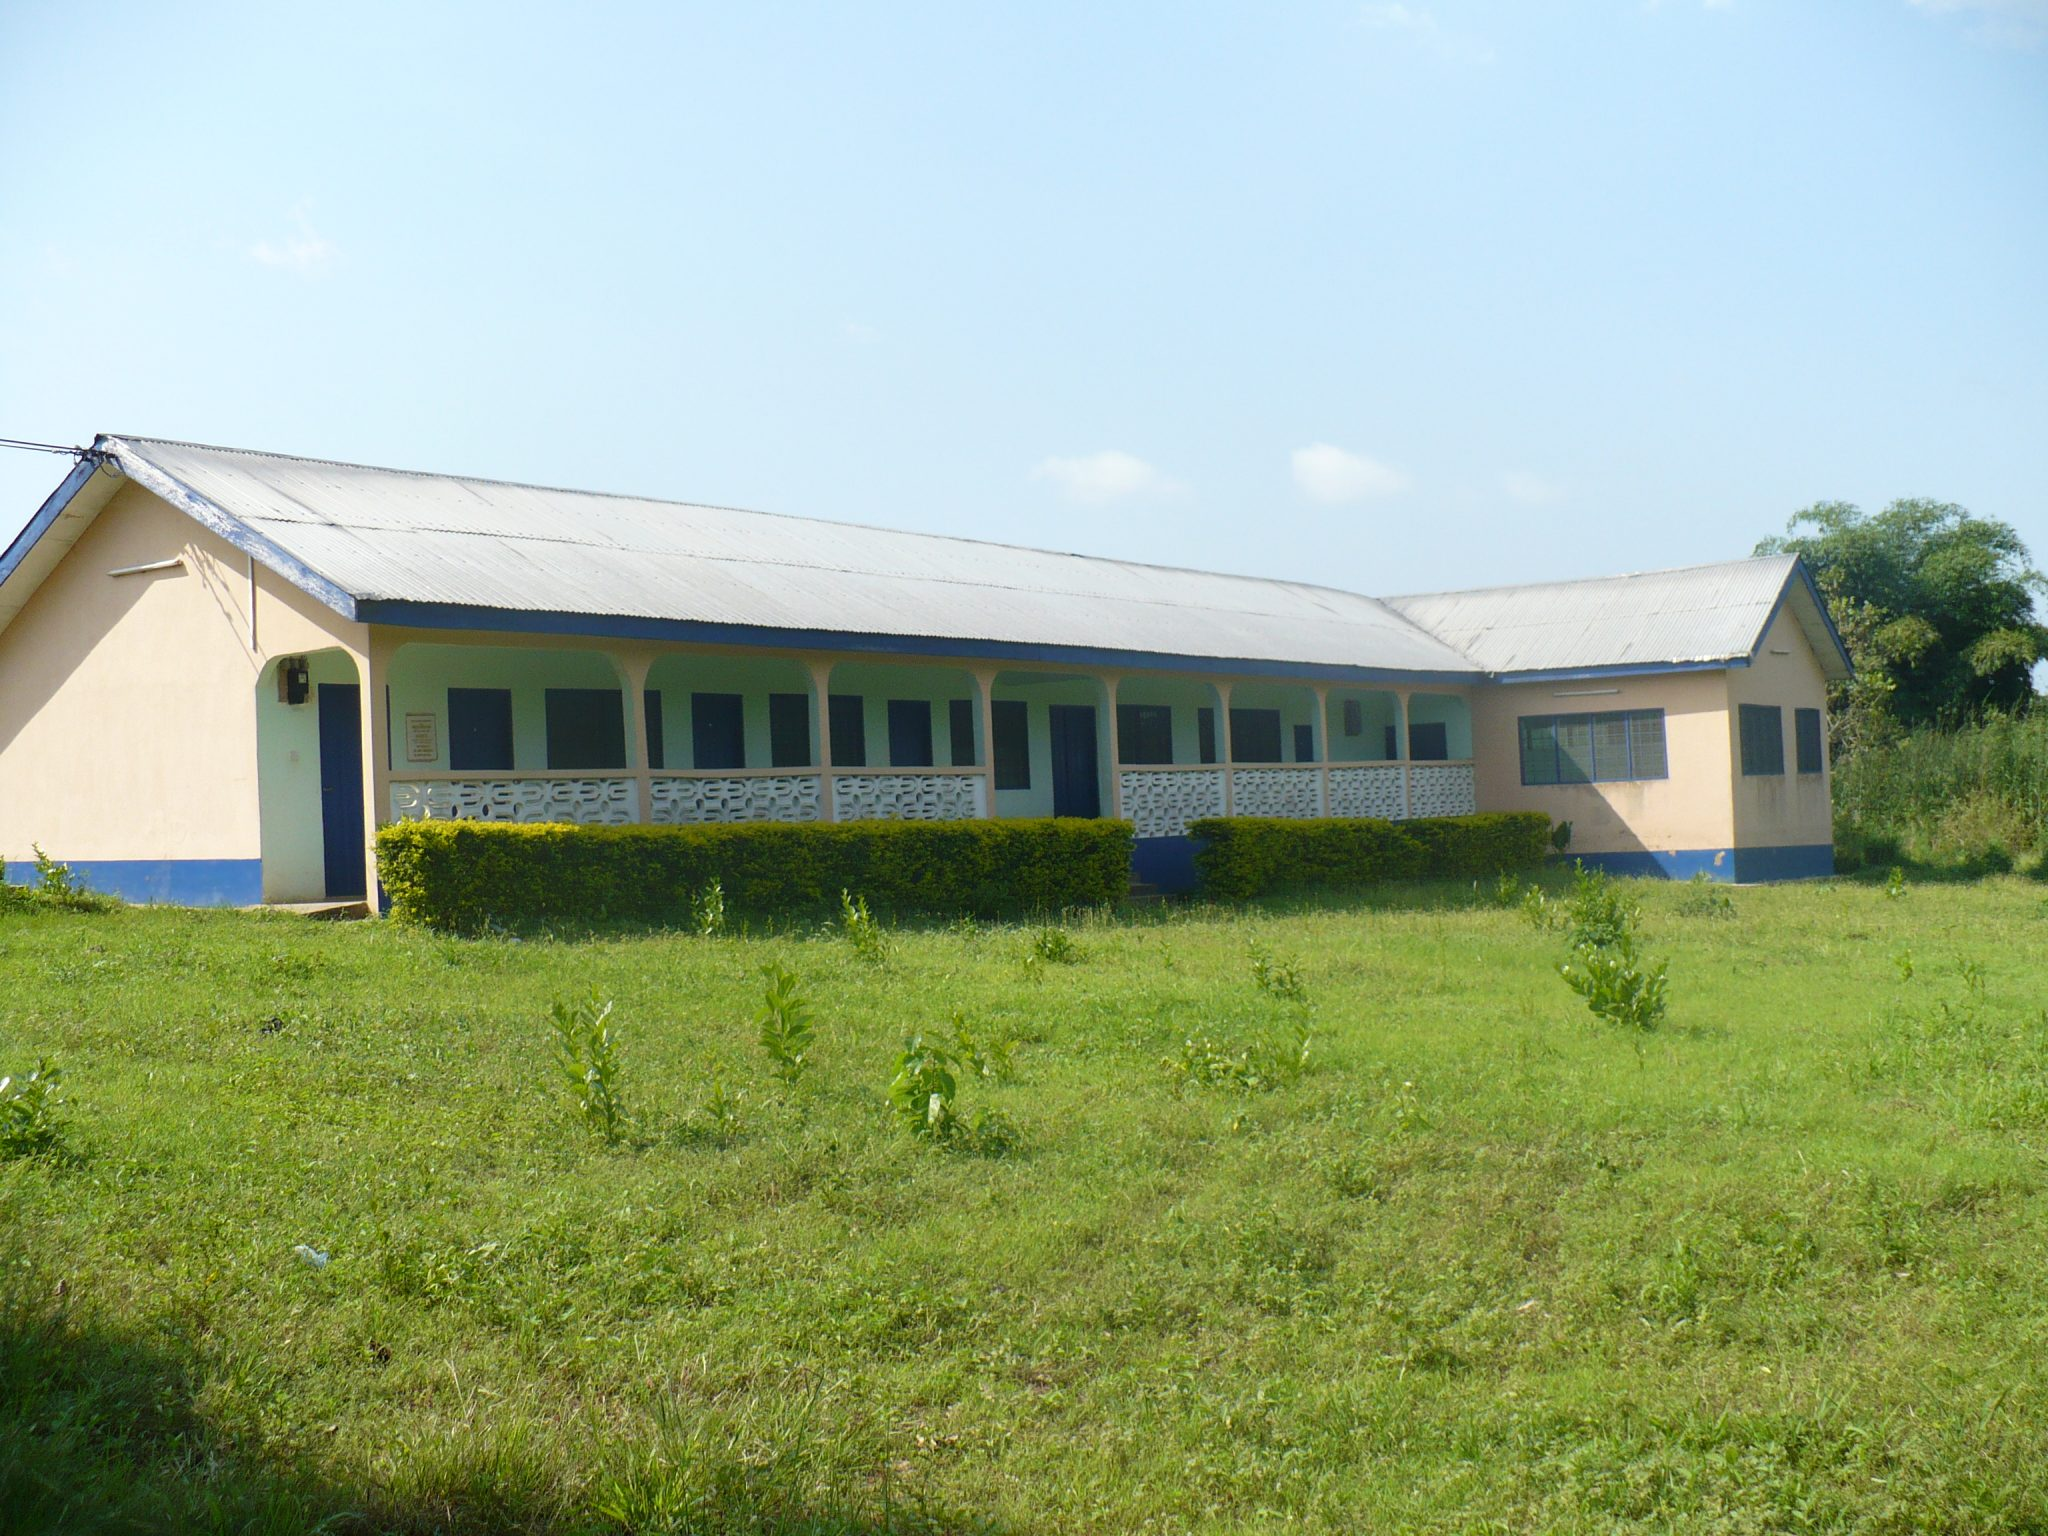 The Nkonya Language Project Offices